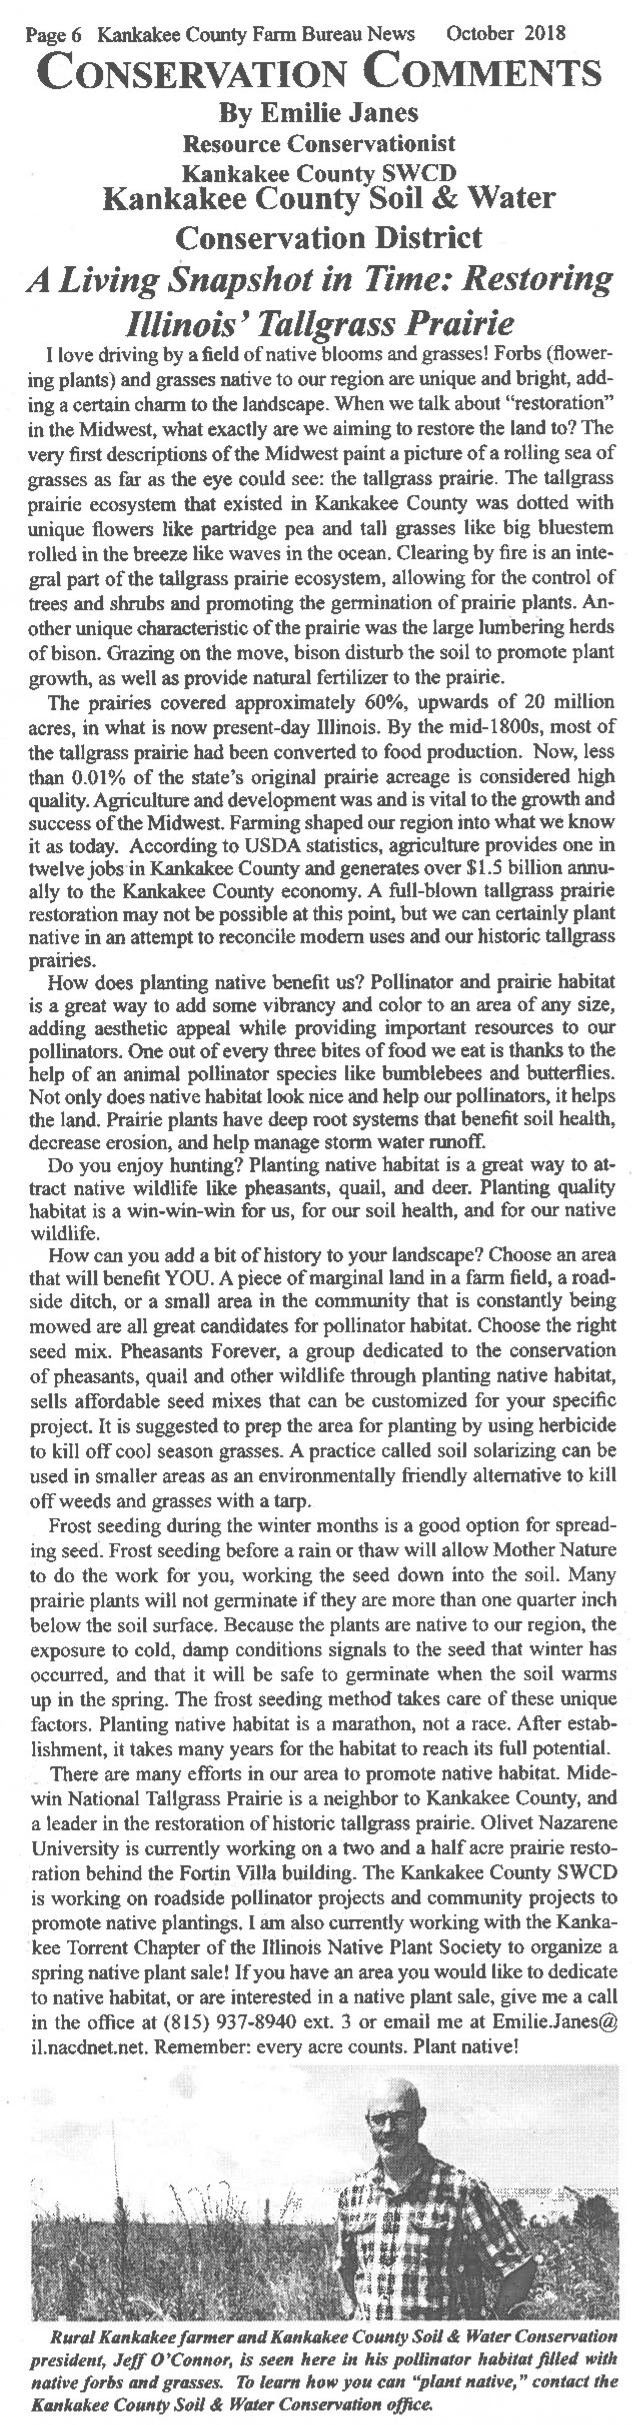 Conservation Comments 10_edited